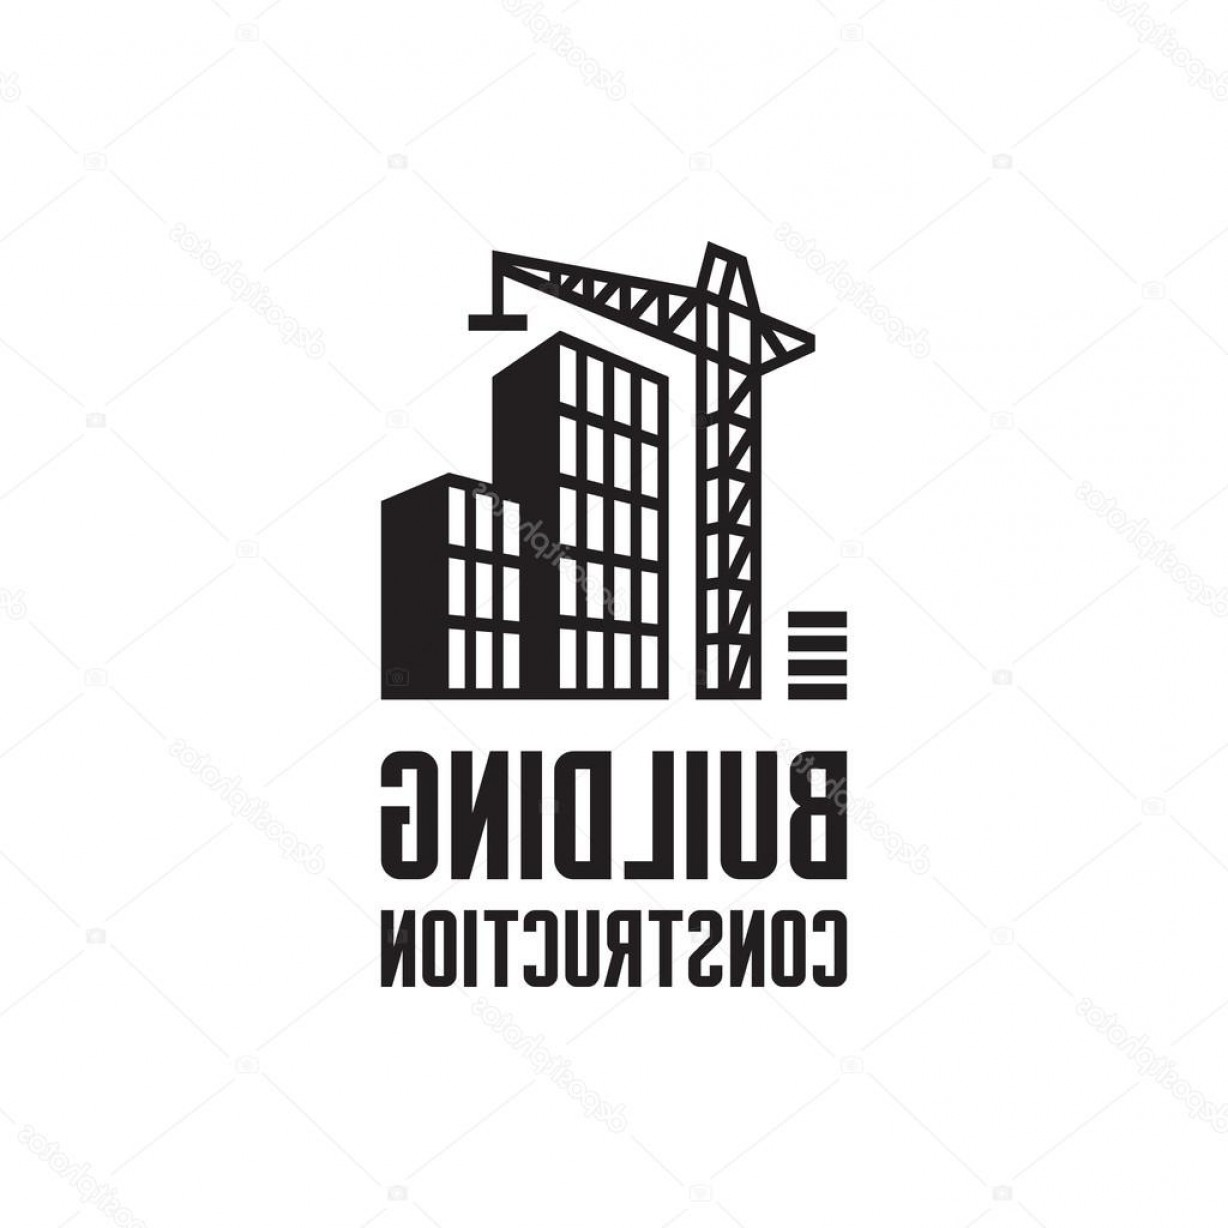 Gru Vector Logos: Stock Illustration Building Construction Logo Illustration Crane